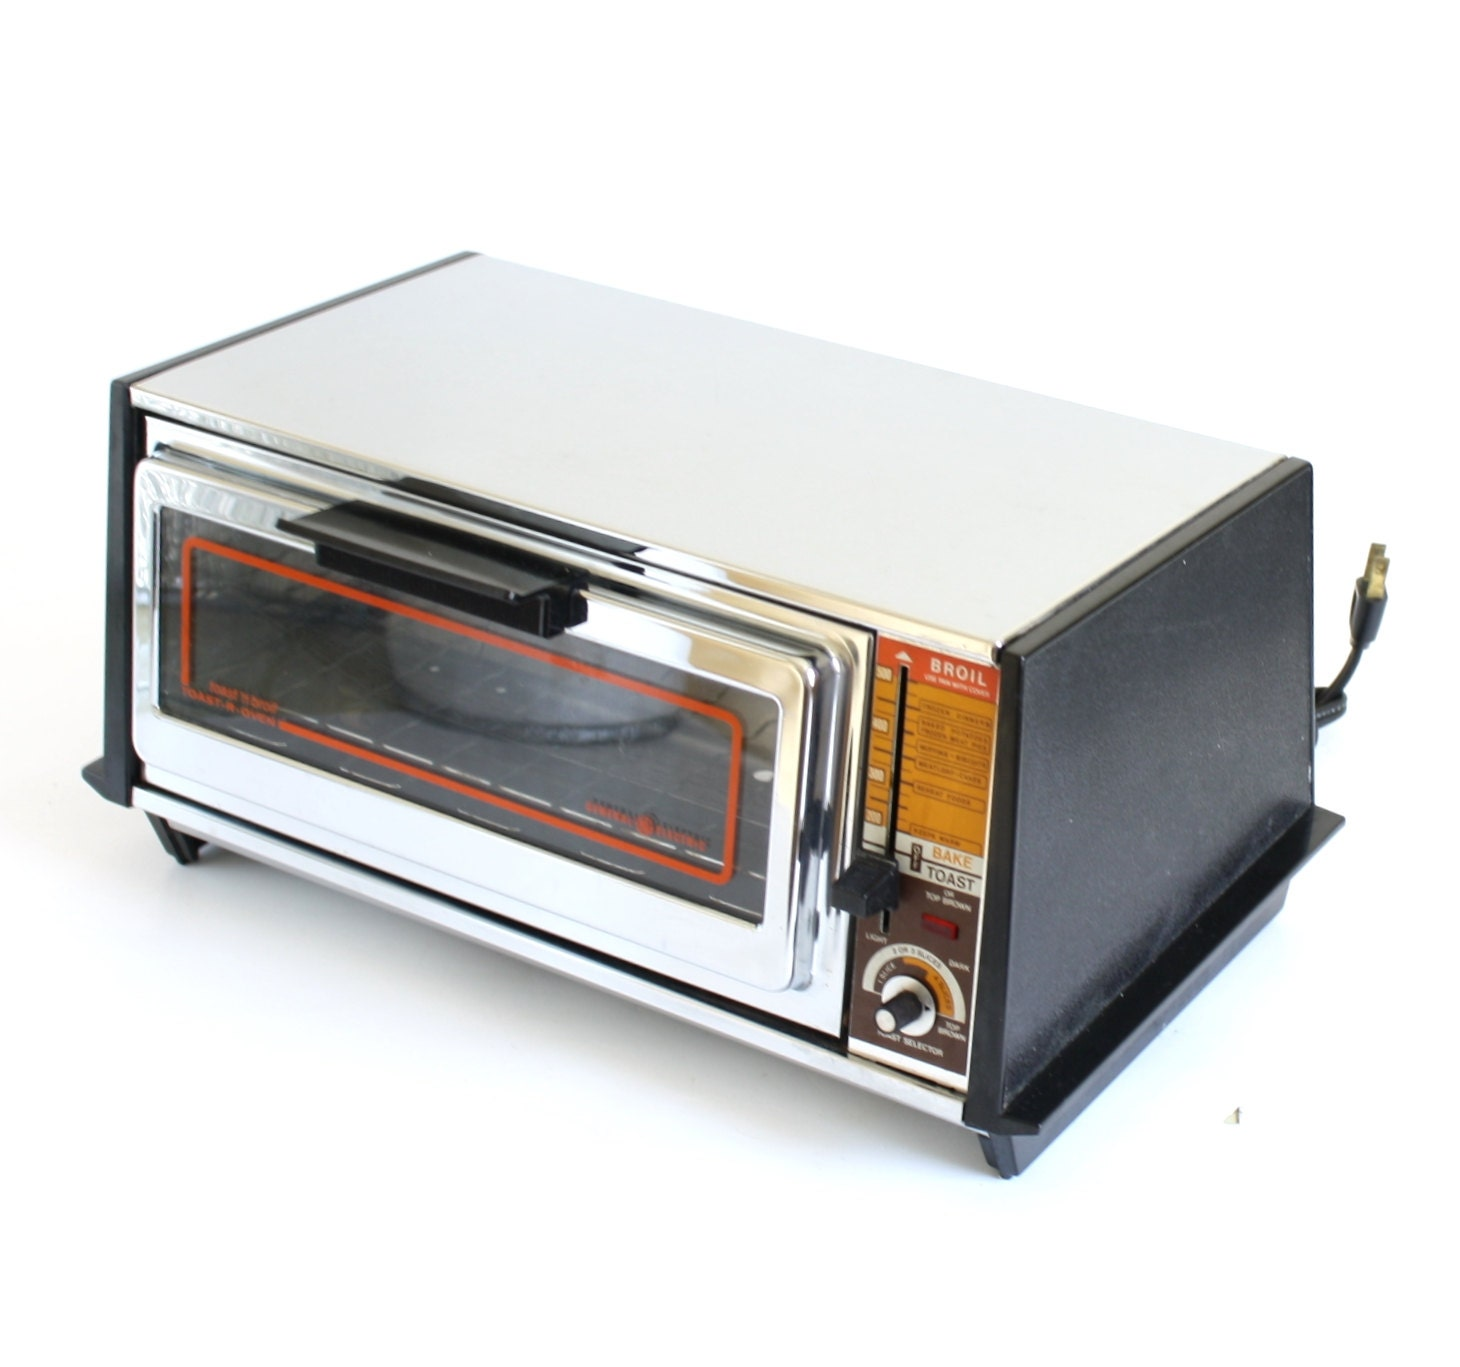 General Electric Toaster Oven Toast N Broil Ge